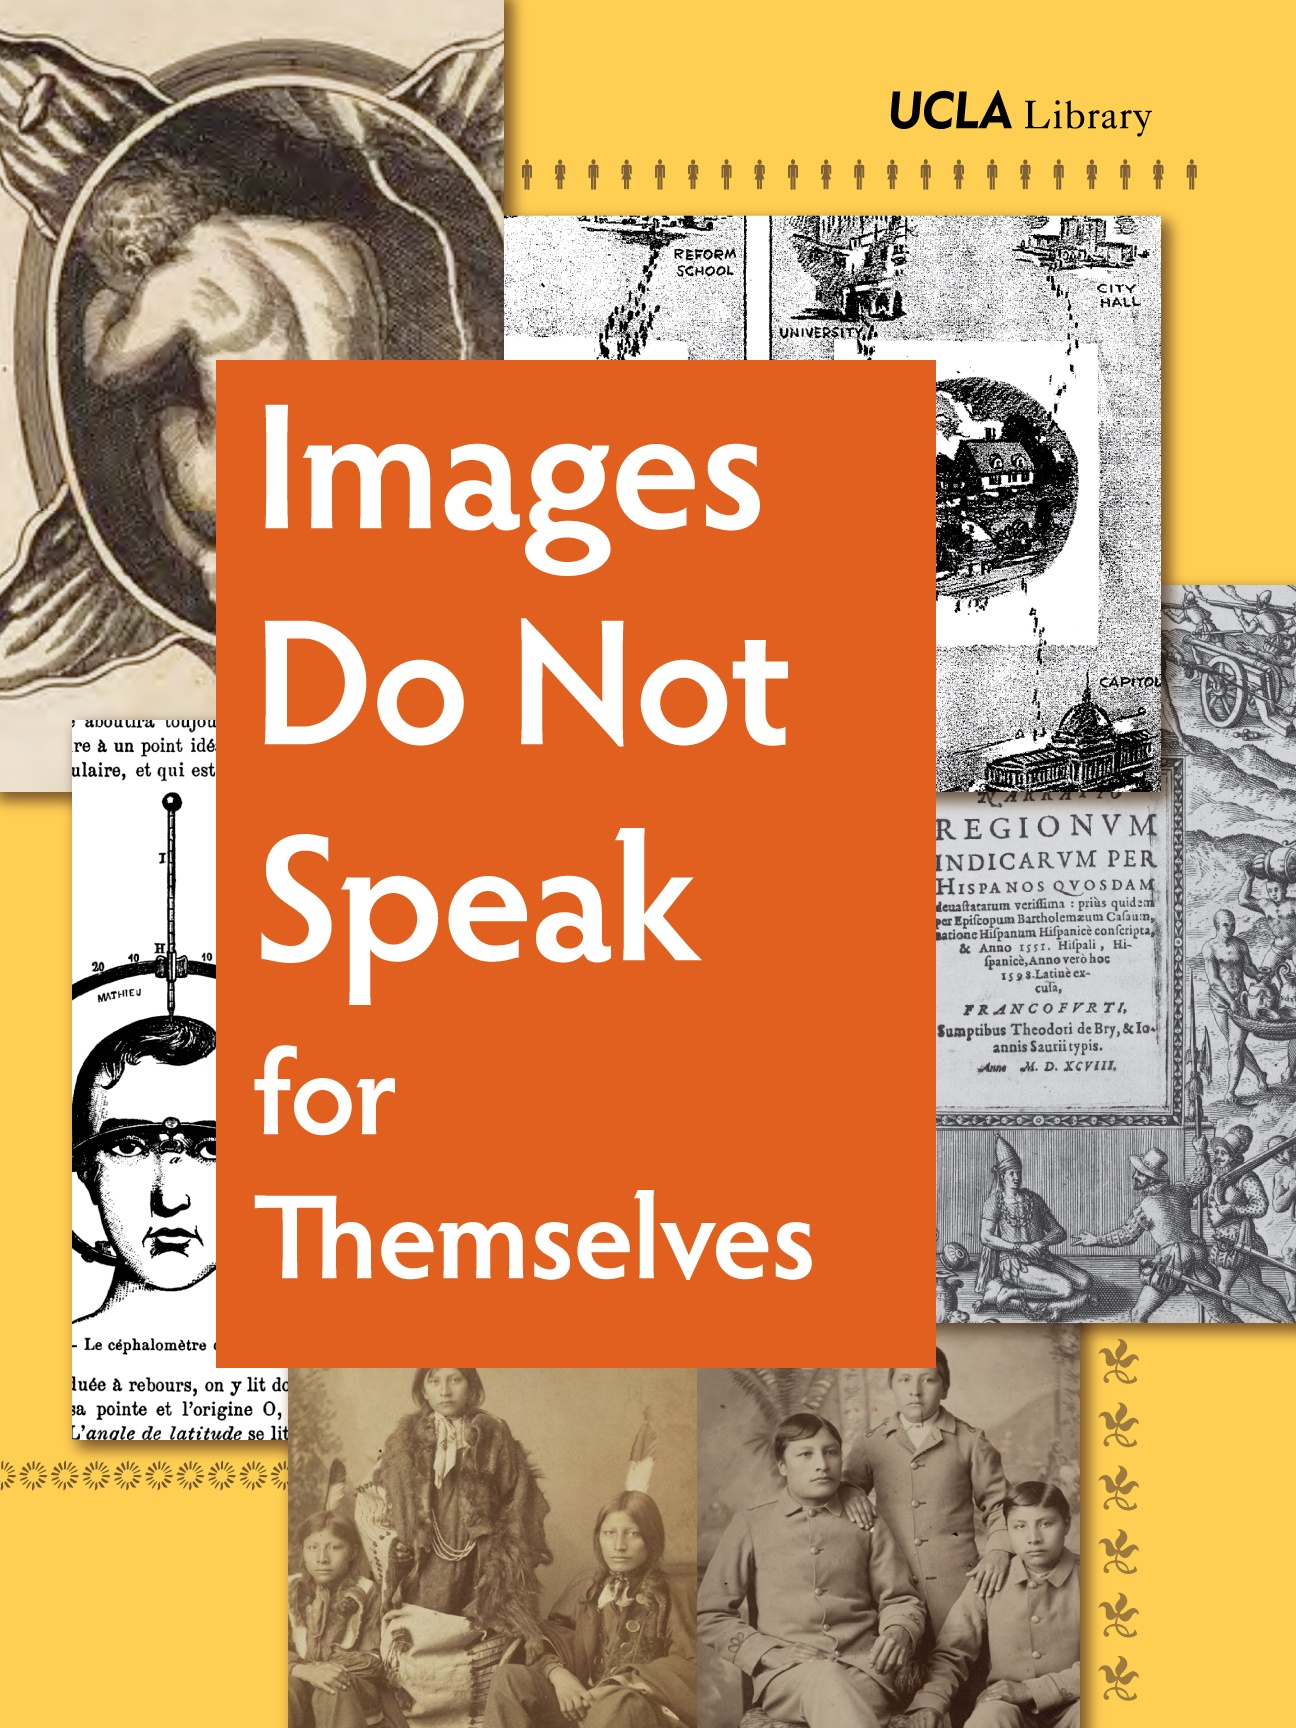 Images Do Not Speak for Themselves exhibit poster